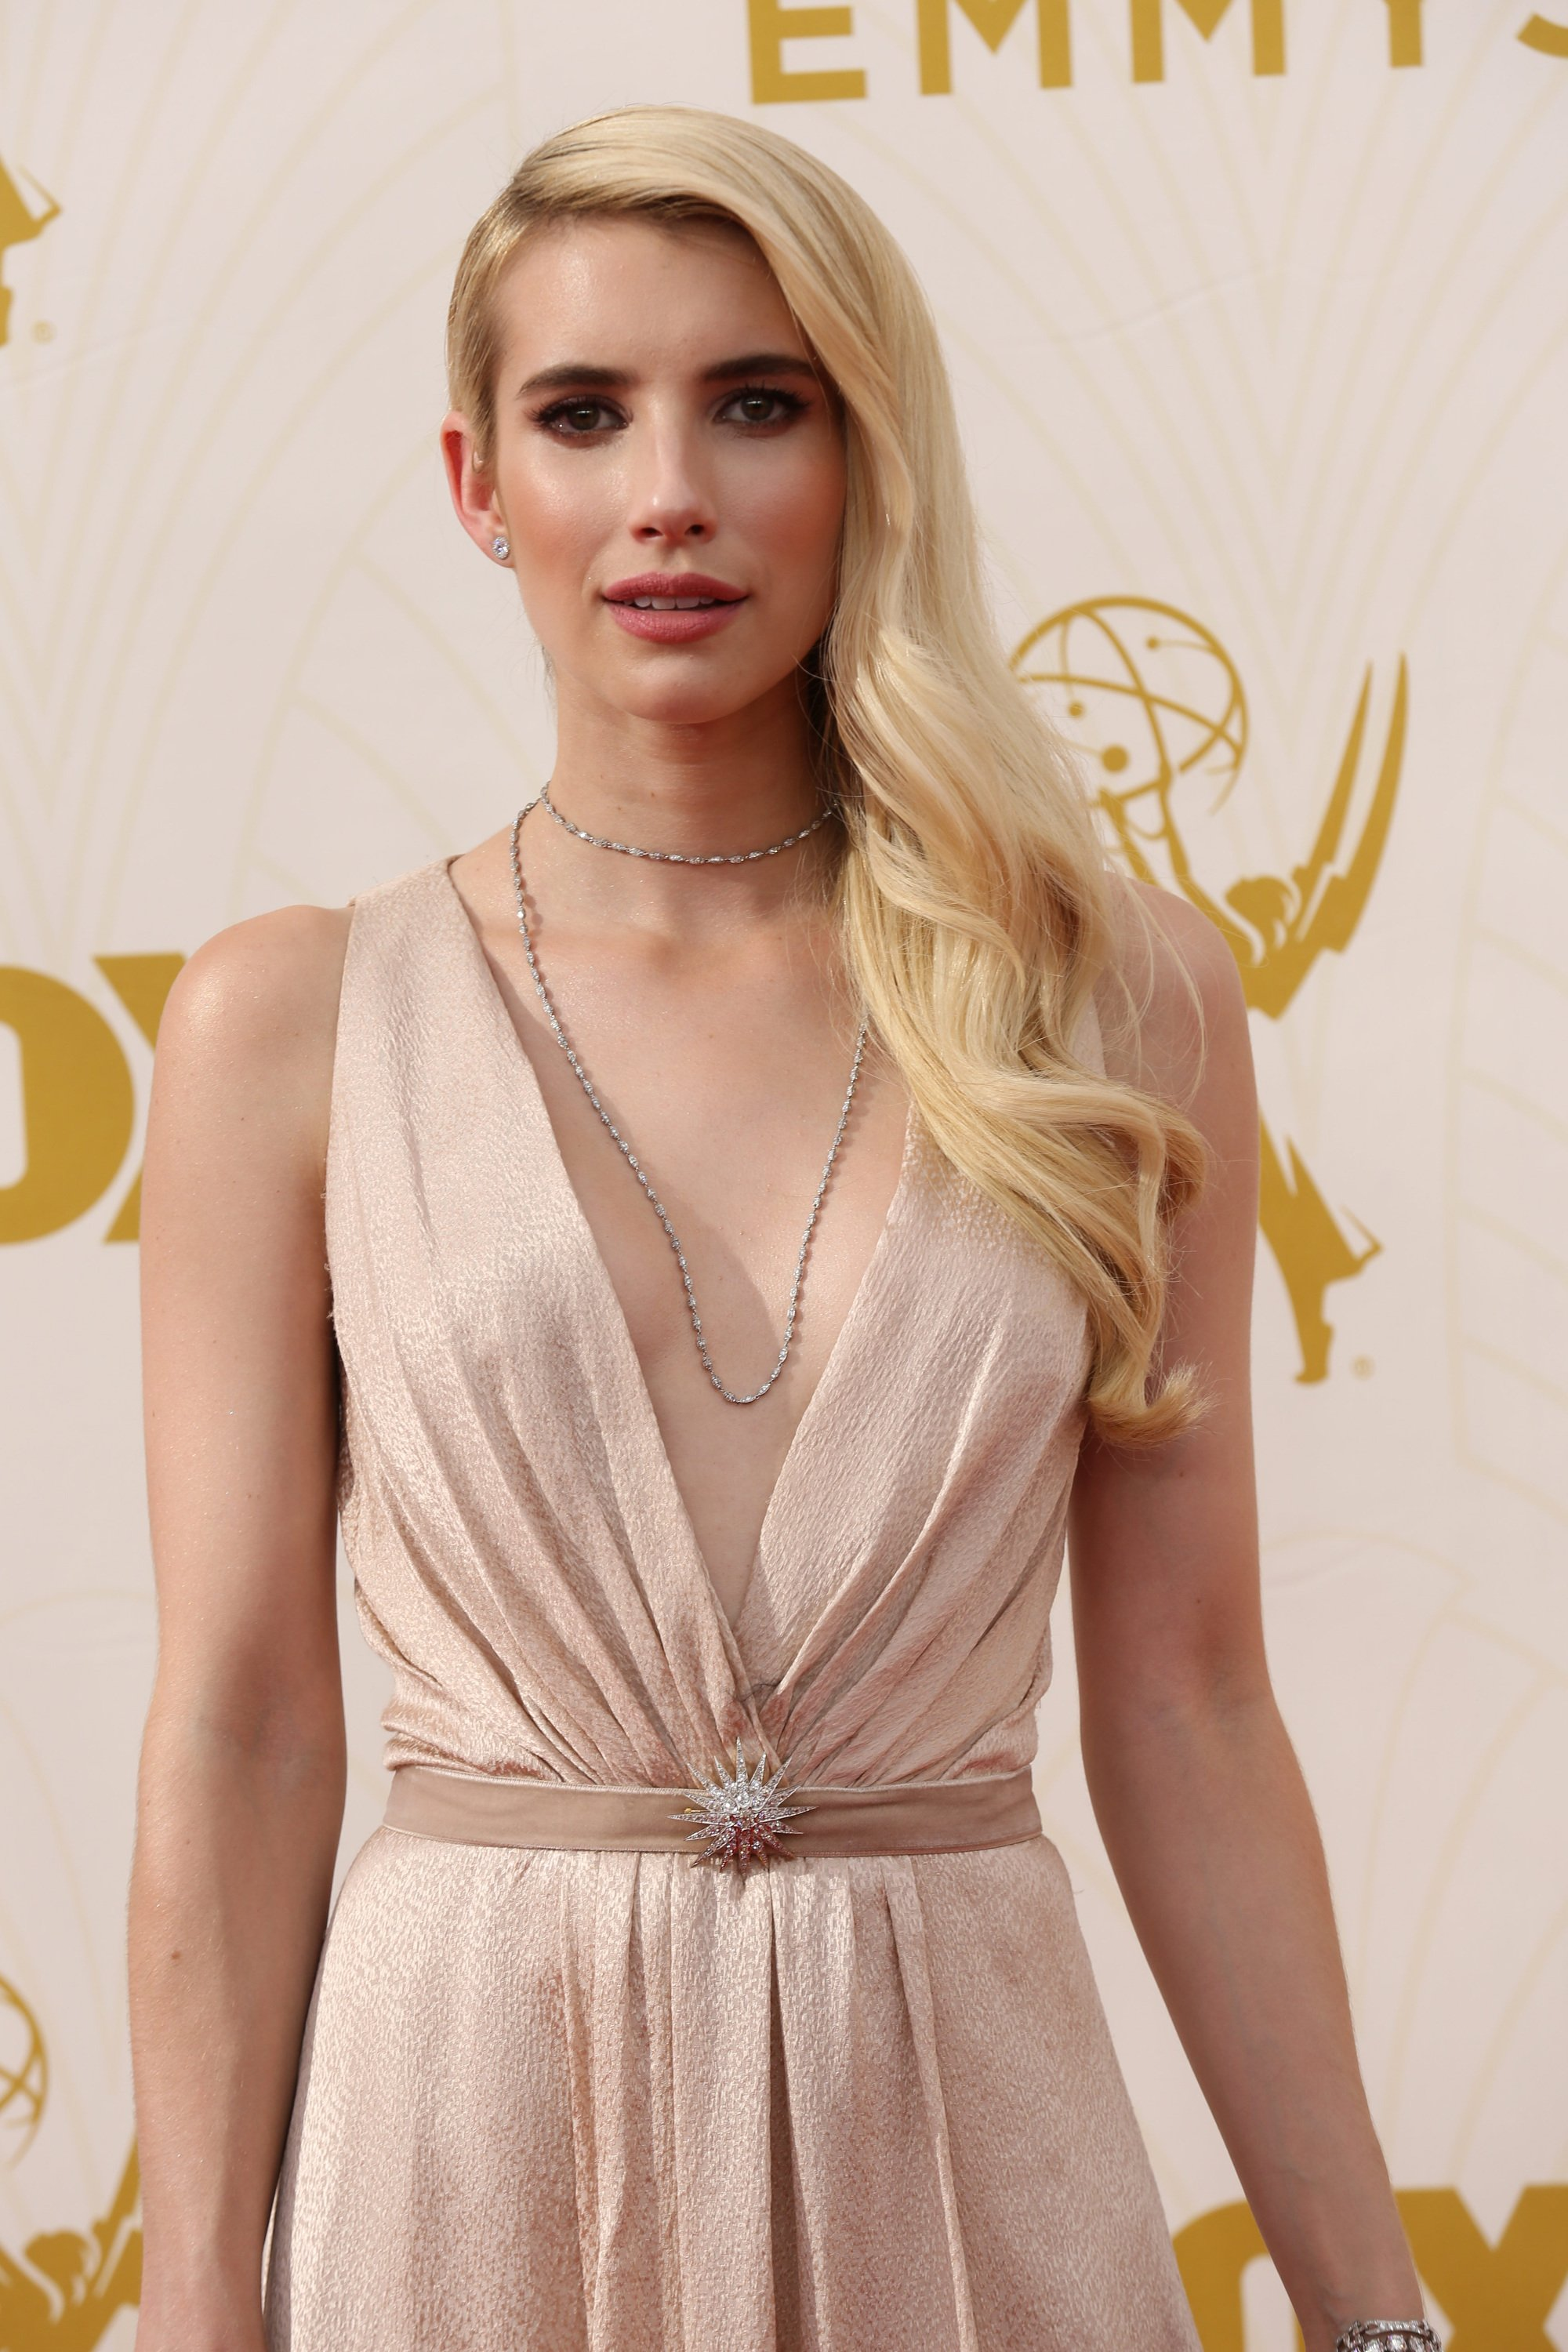 Celebrities arrive at 67th Emmys Red Carpet at Microsoft Theater.  Featuring: Emma Roberts Where: Los Angeles, California, United States When: 20 Sep 2015 Credit: Brian To/WENN.com